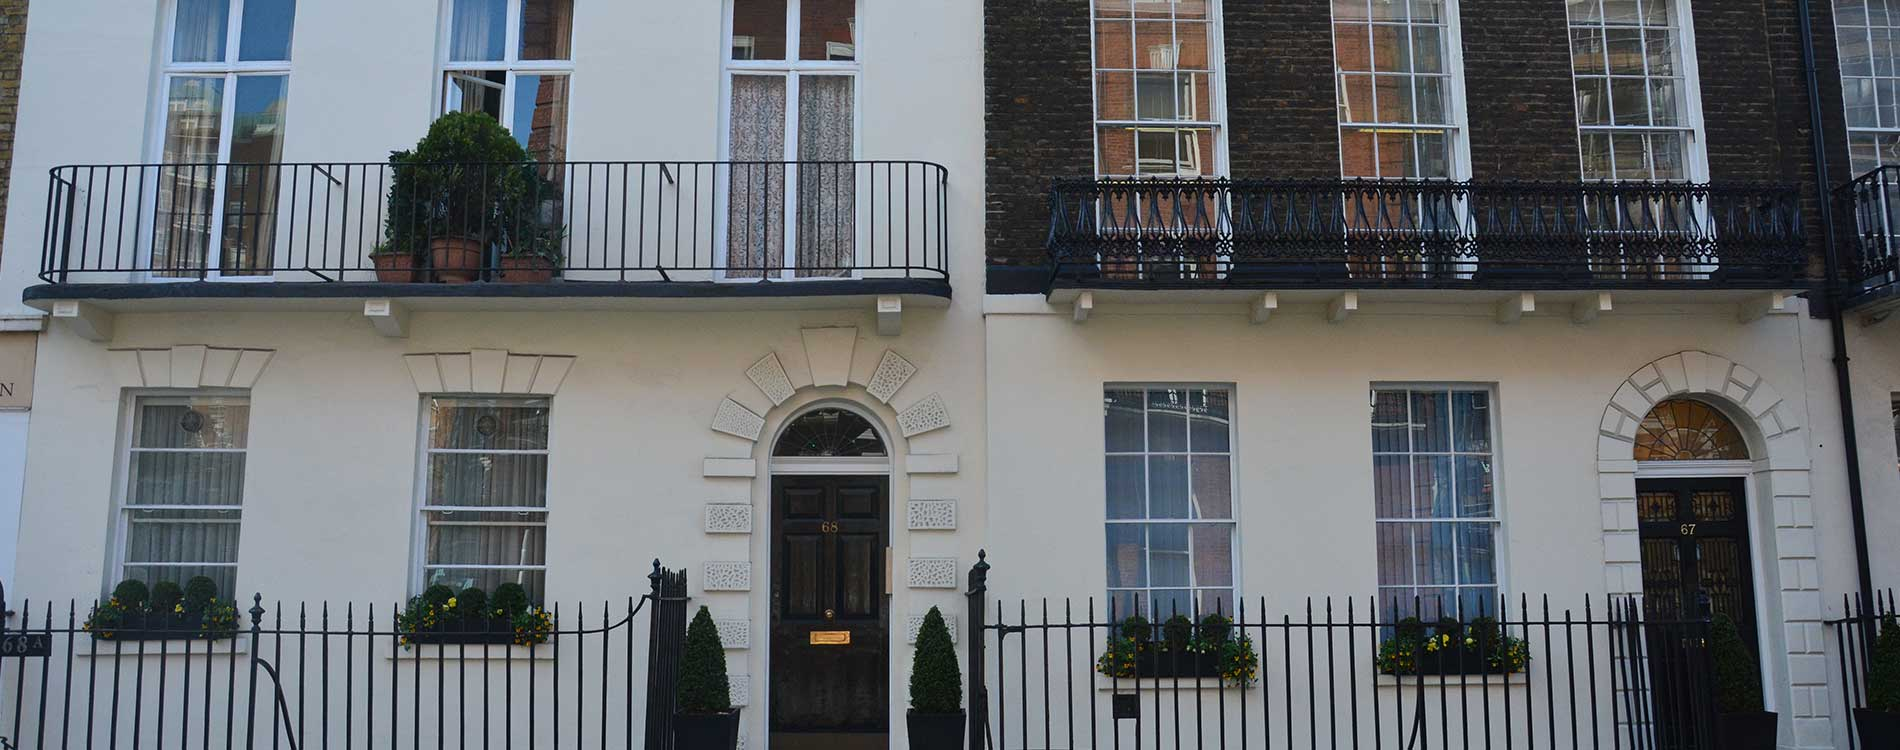 Balcony's and doors at the front of a London home restored by axis